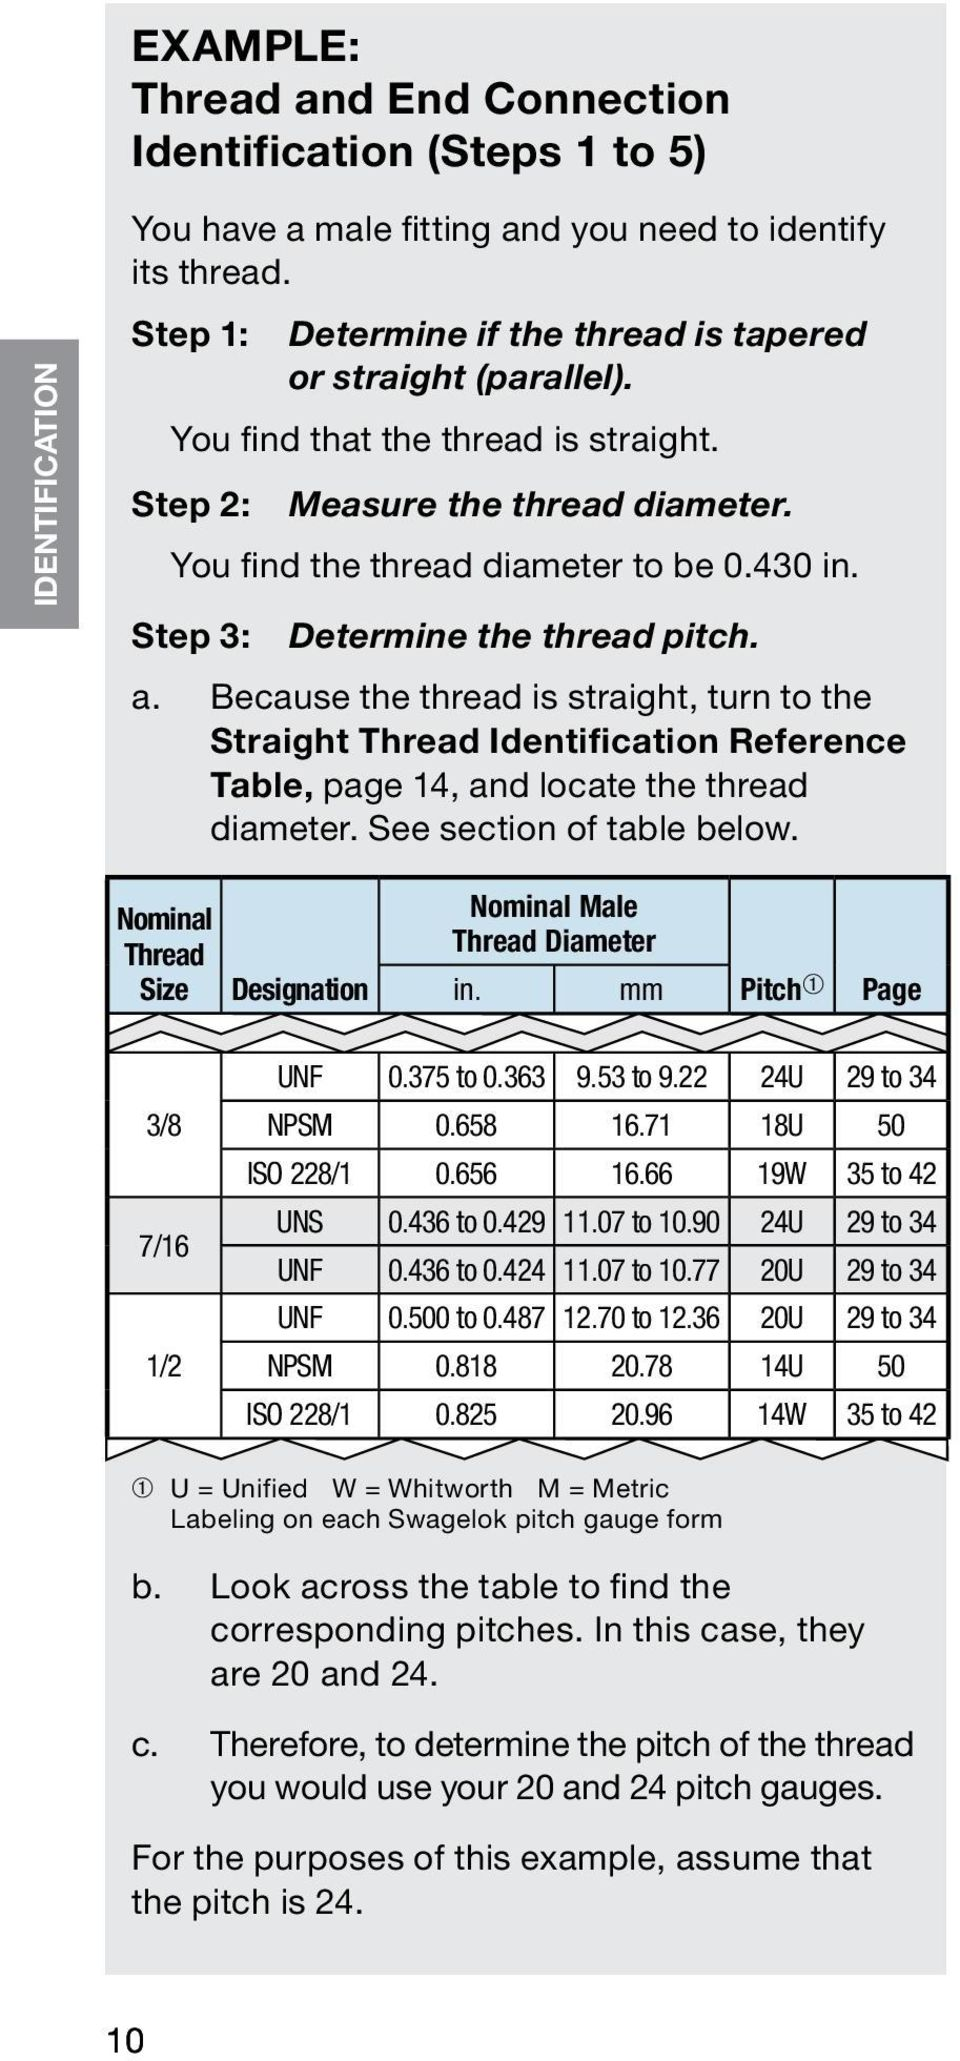 Because the thread is straight, turn to the Straight Identification Reference Table, page 14, and locate the thread diameter. See section of table below.